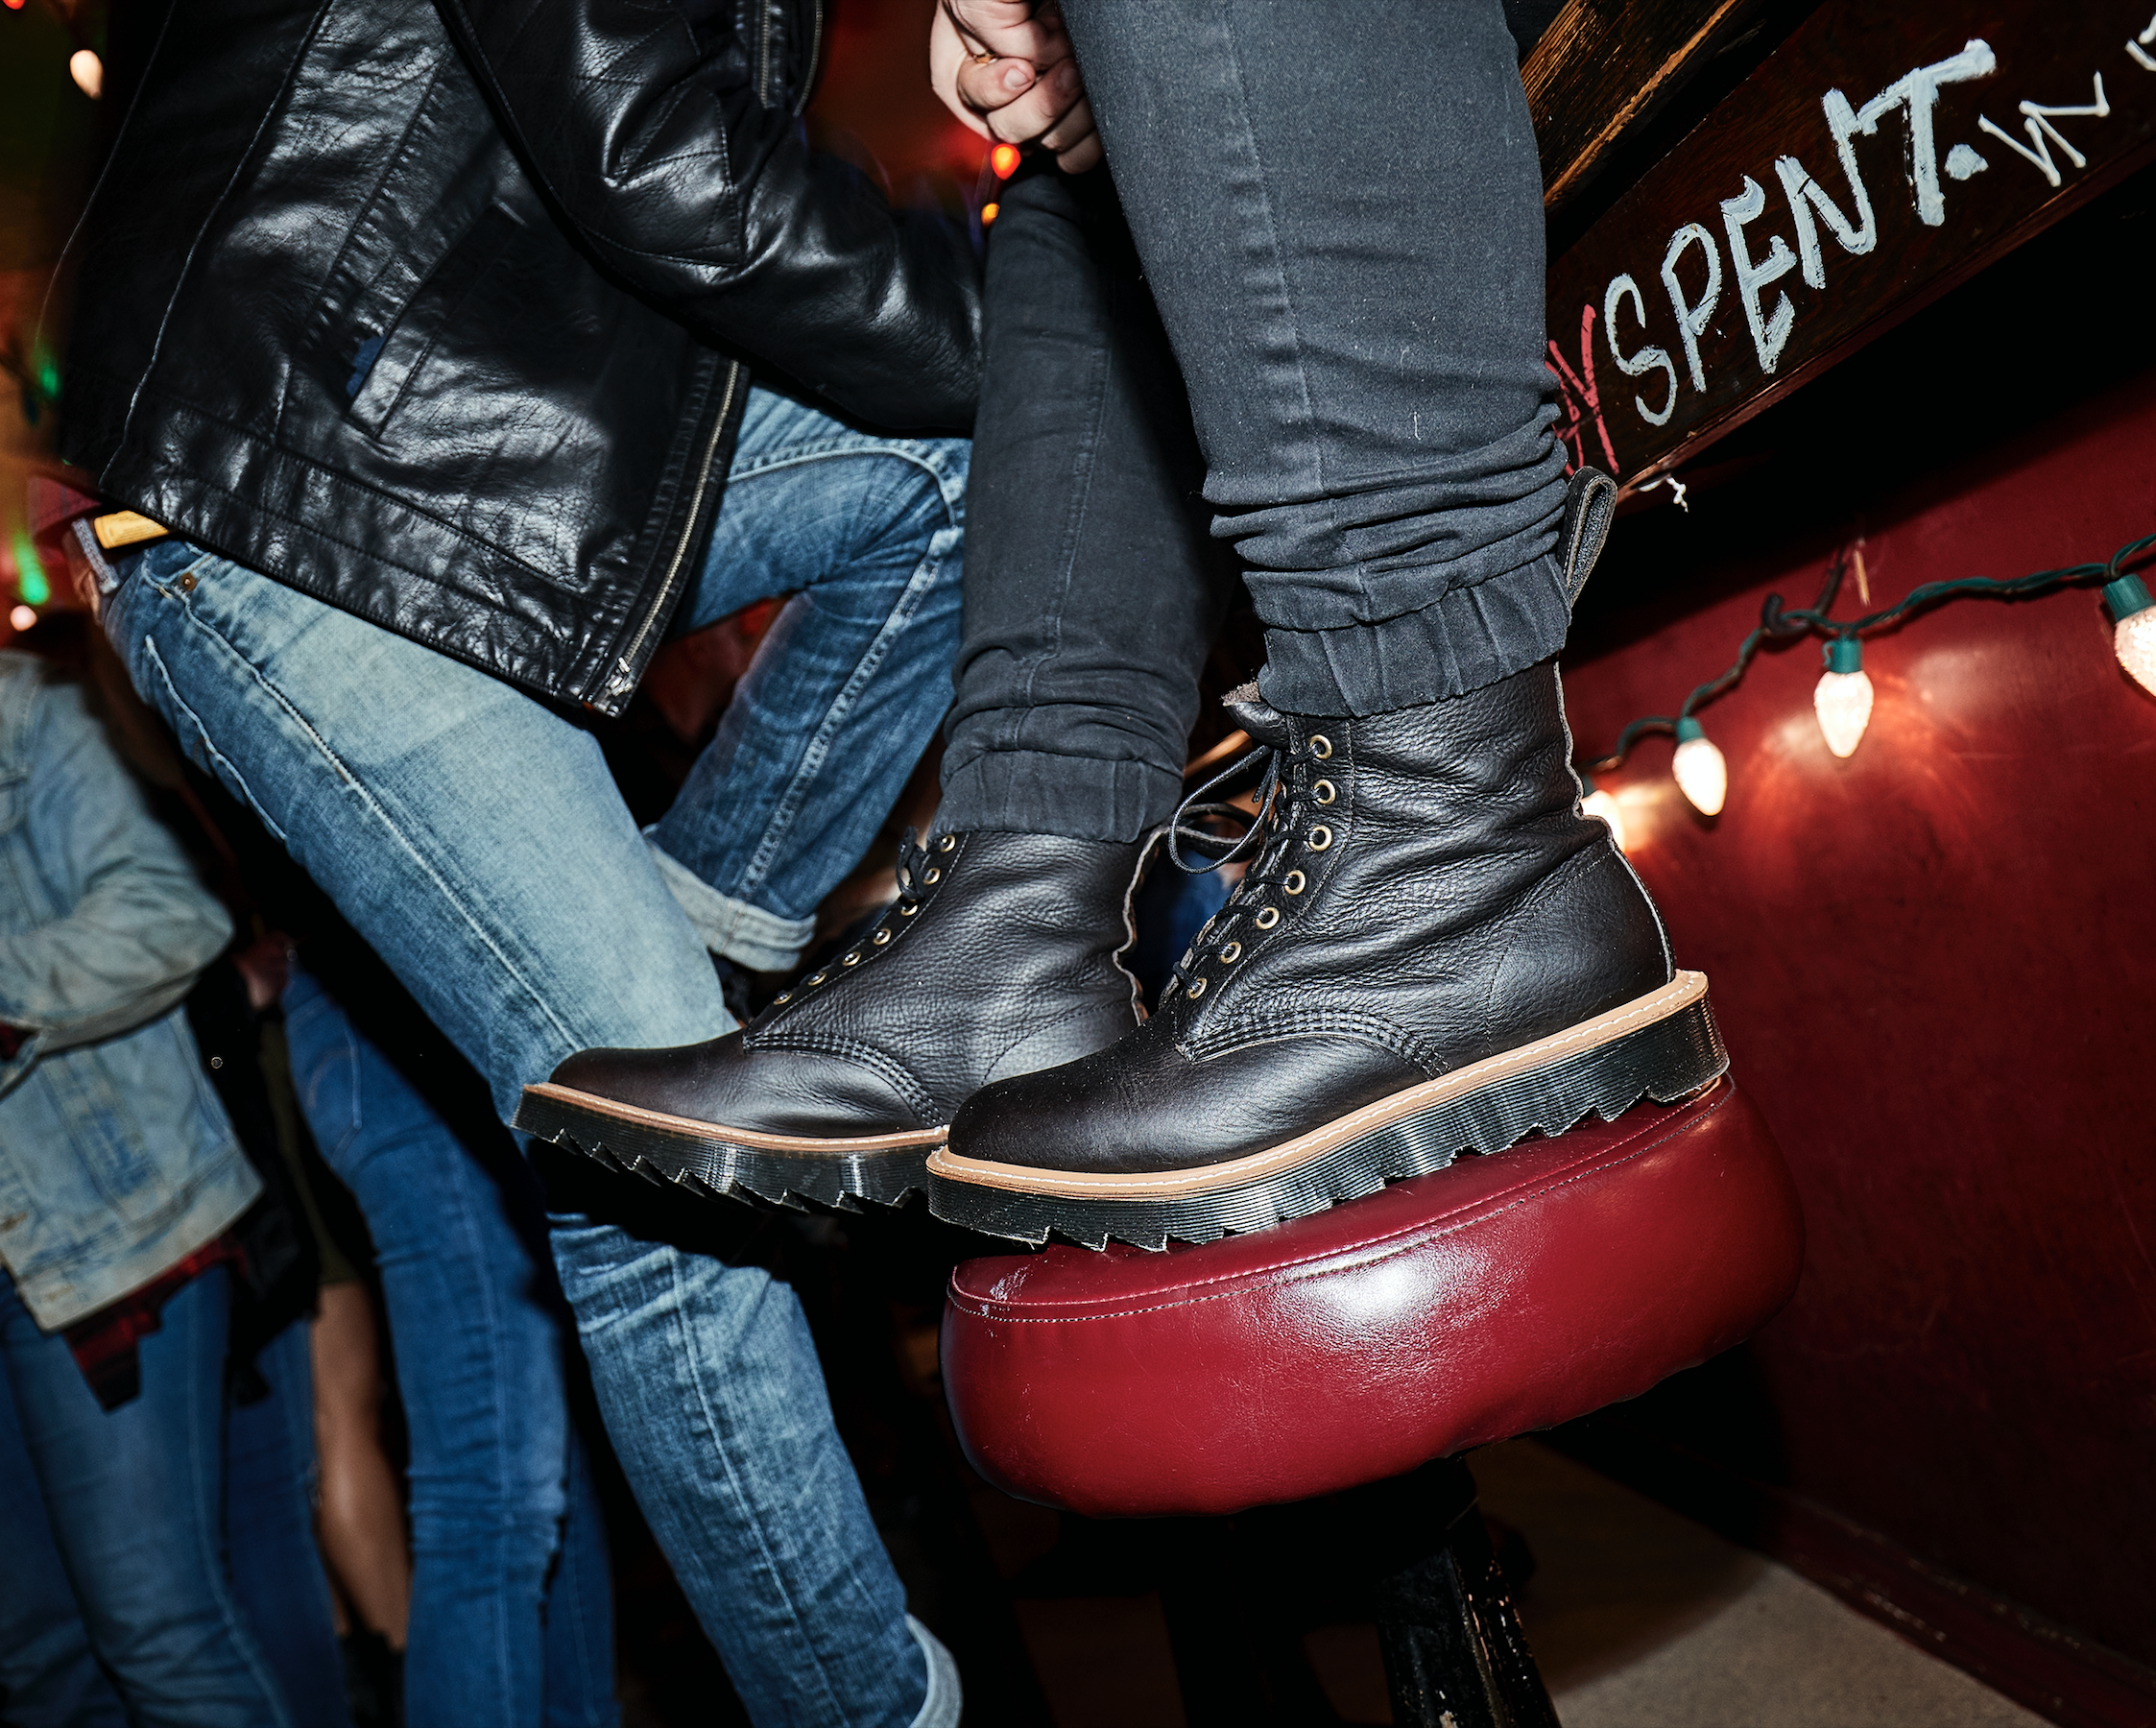 7cc8354cf10 Pascal Ripple Doc Martens, Dr Martens Boots, Martens Style, England  Fashion, Young